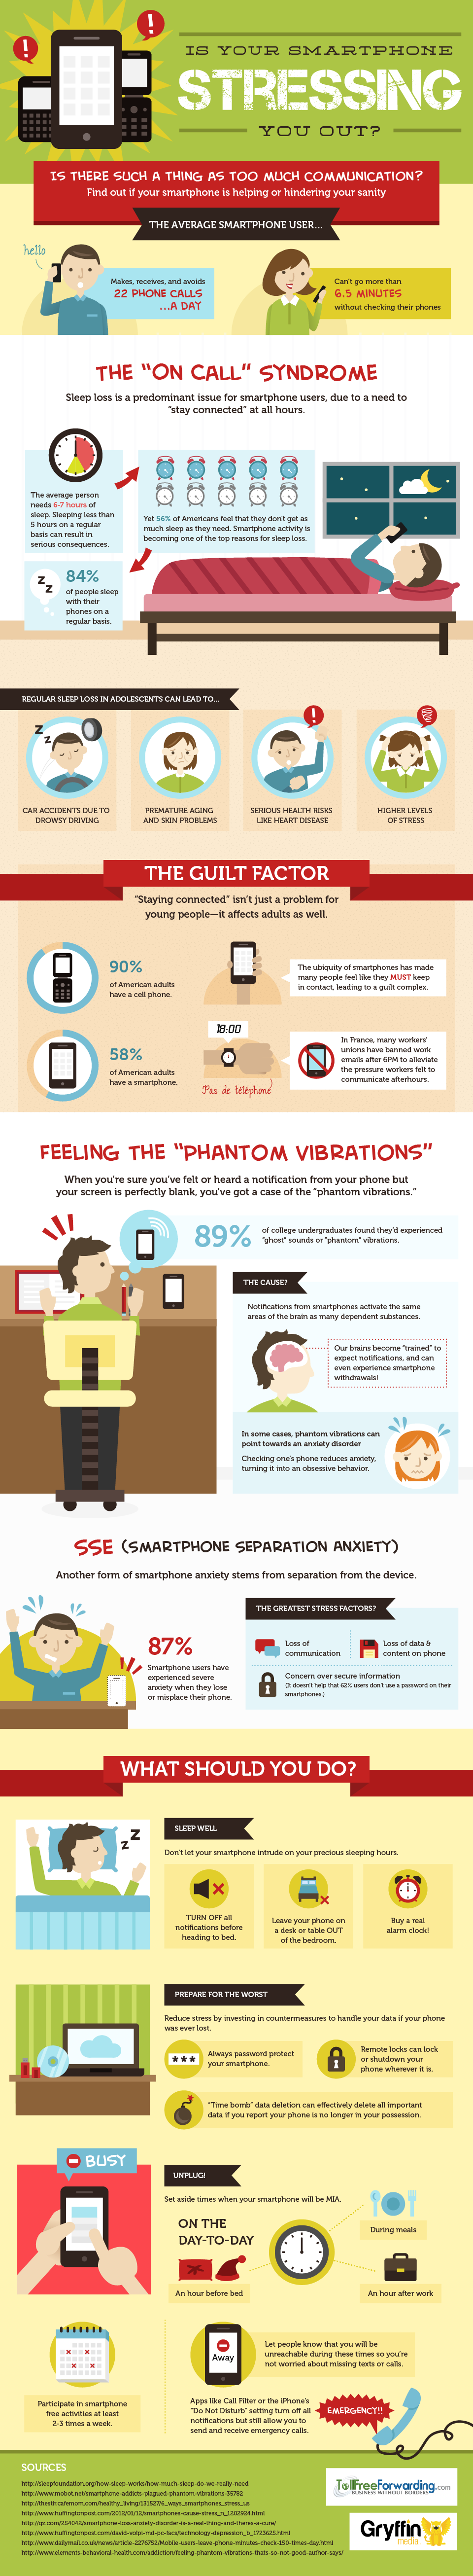 Infographic: Is Your Smart Phone Stressing You Out